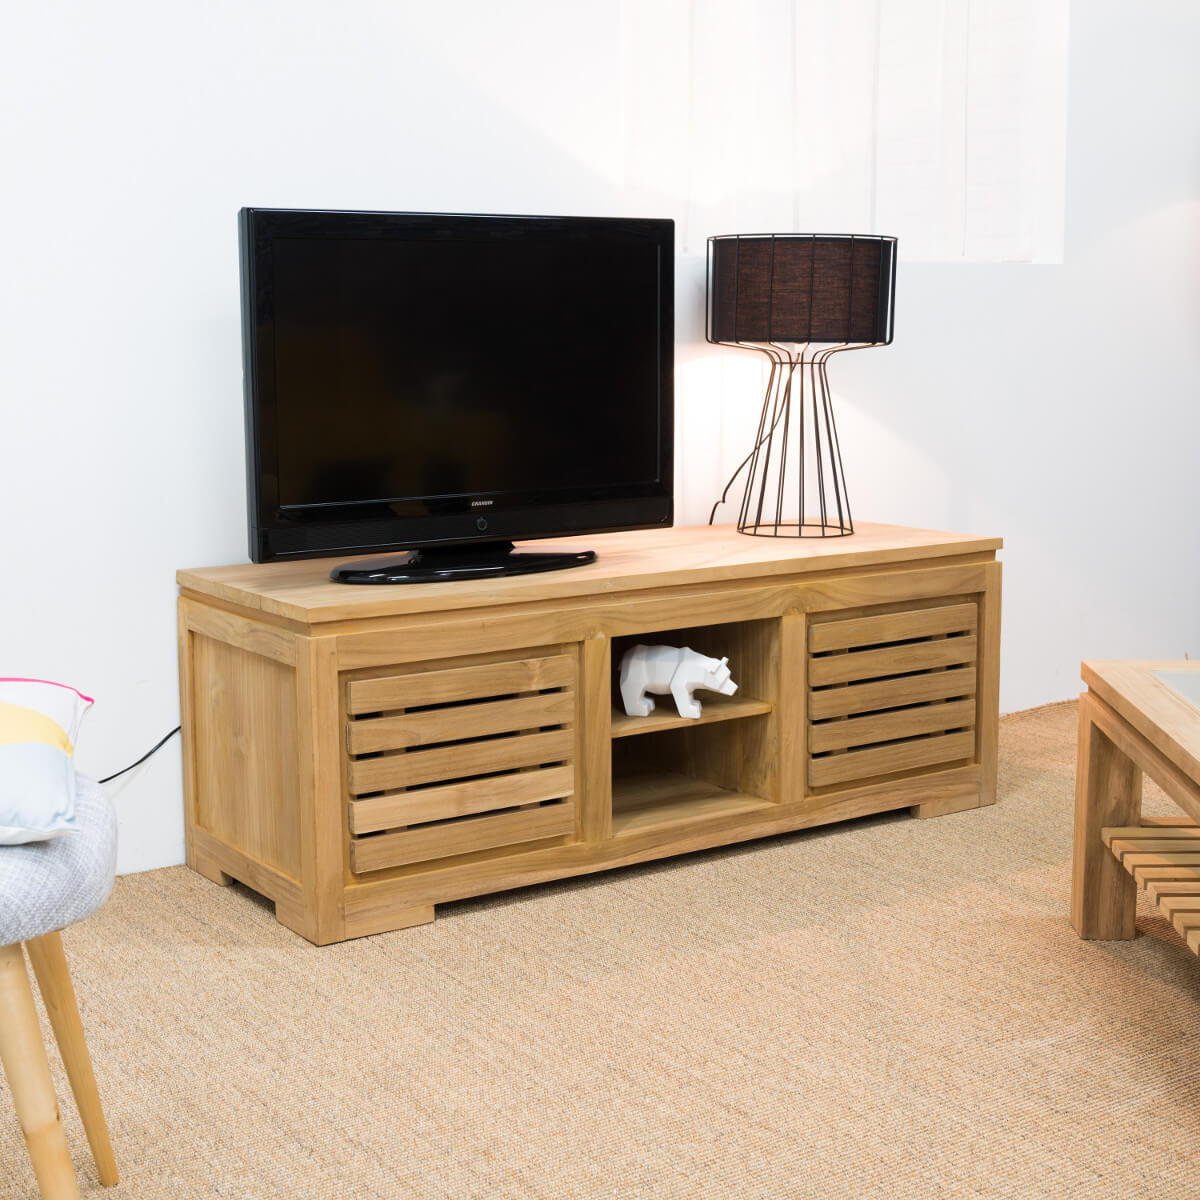 Meuble tv de salon en bois de teck massif zen rectangle naturel l 140 cm for Comhuile pour meuble en teck